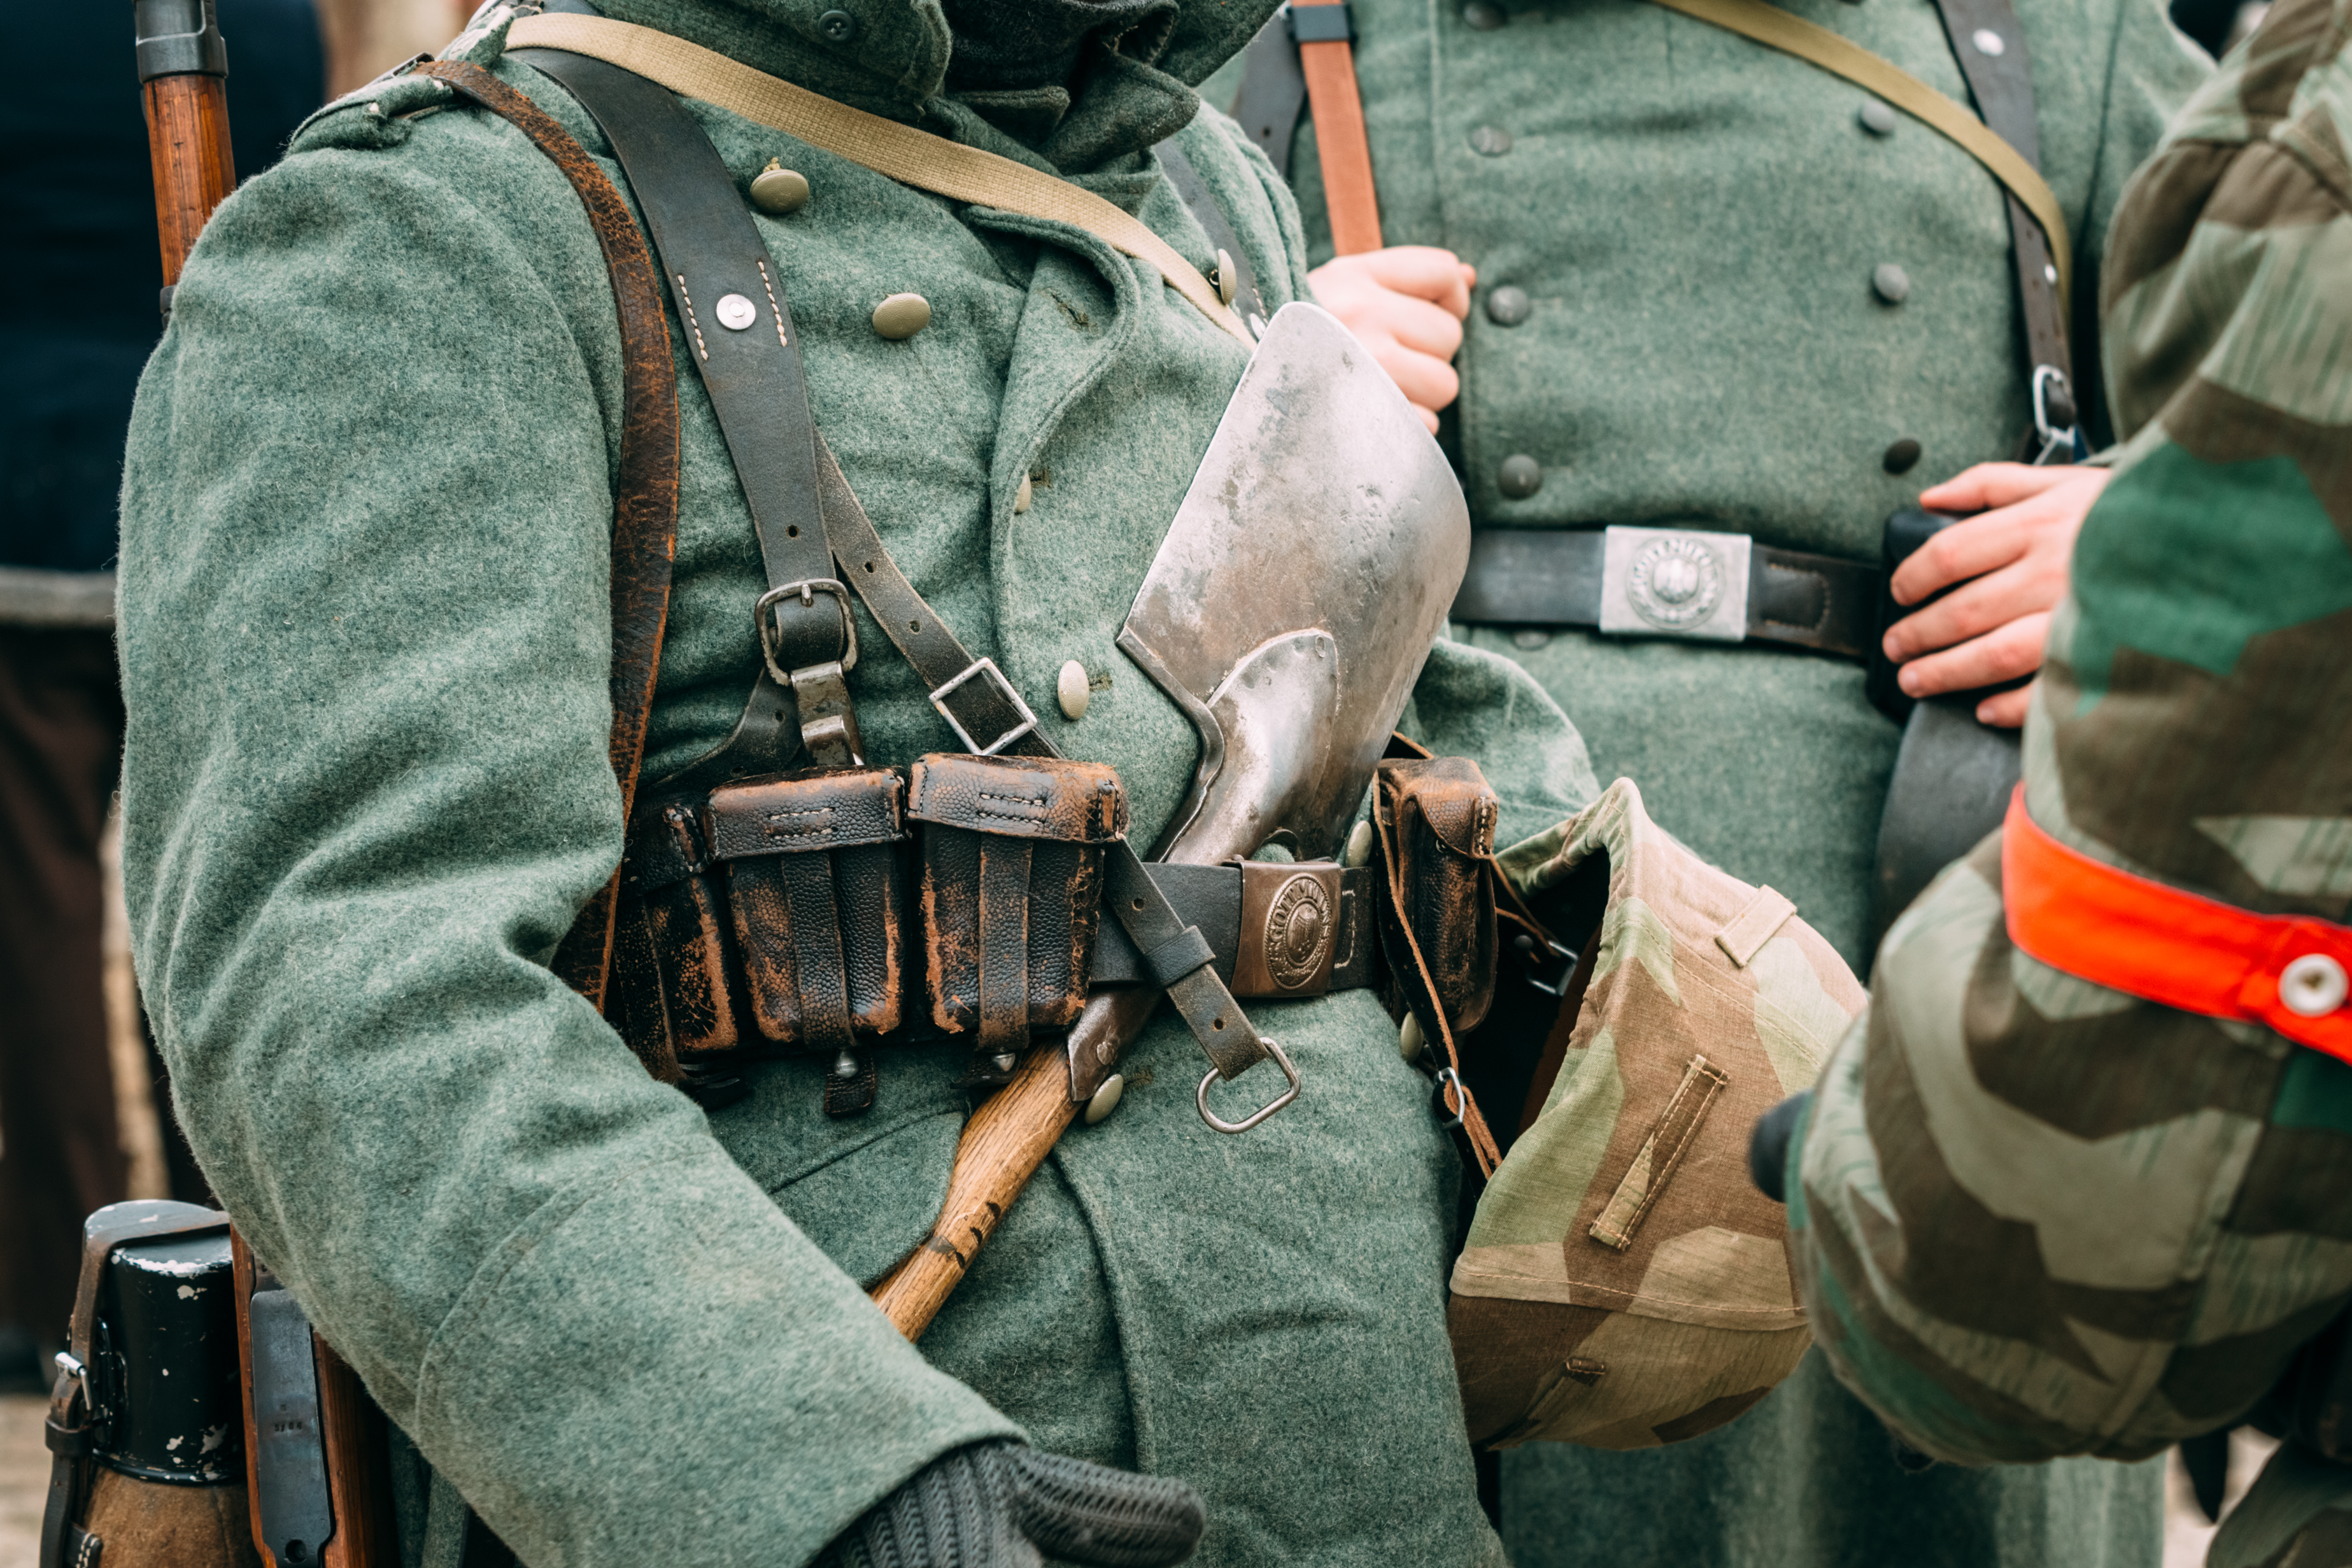 The actor in the form of a German soldier during the Second World War, with a shovel in his belt